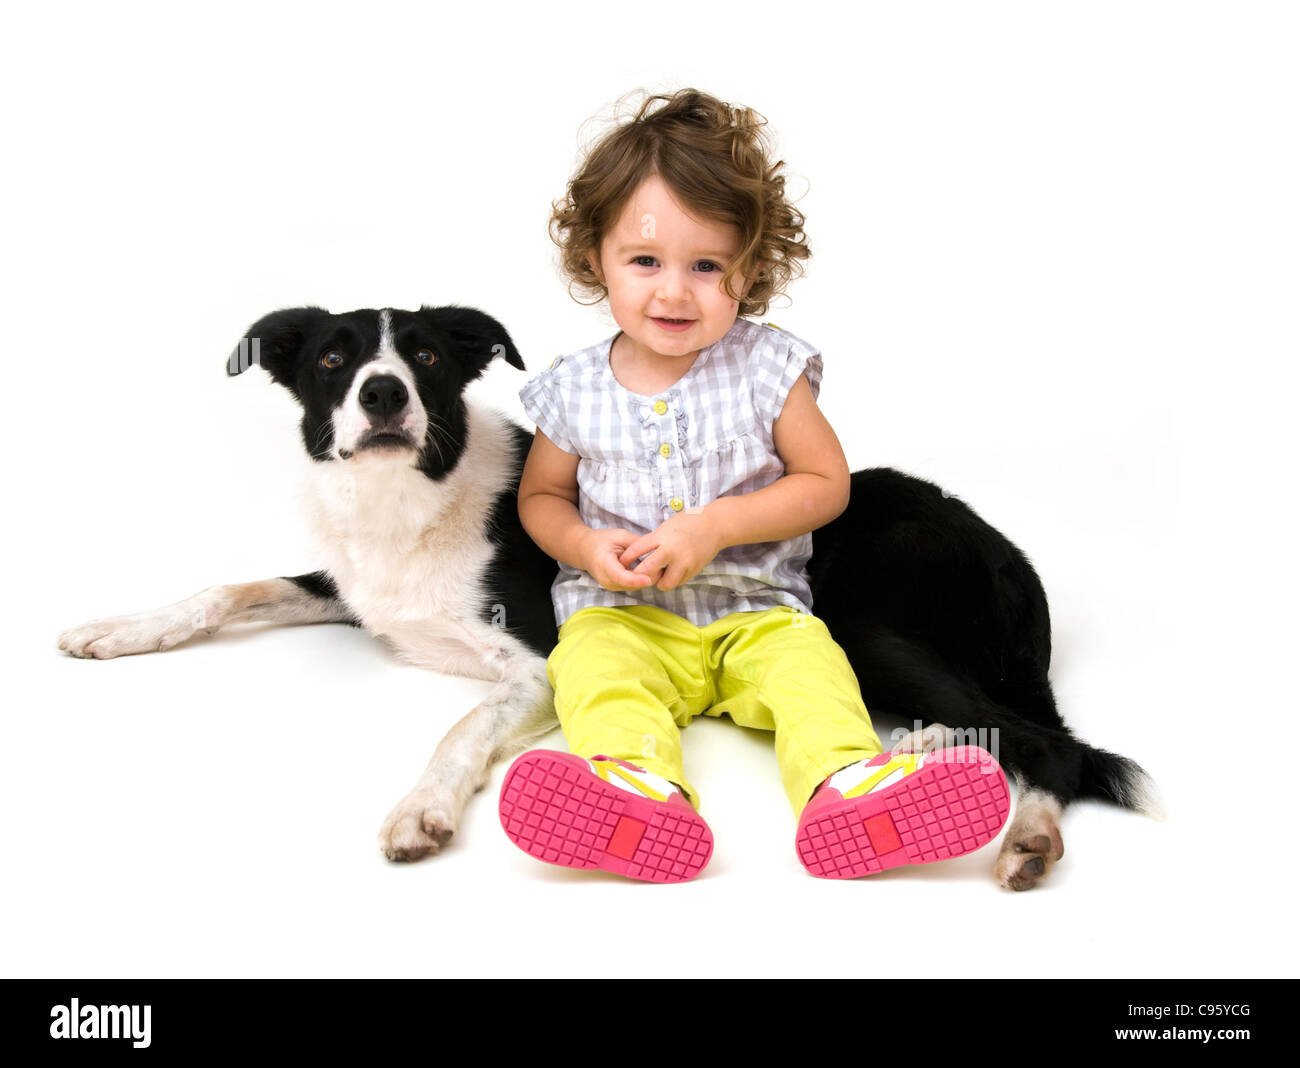 Toddler and her pet dog. - Stock Image